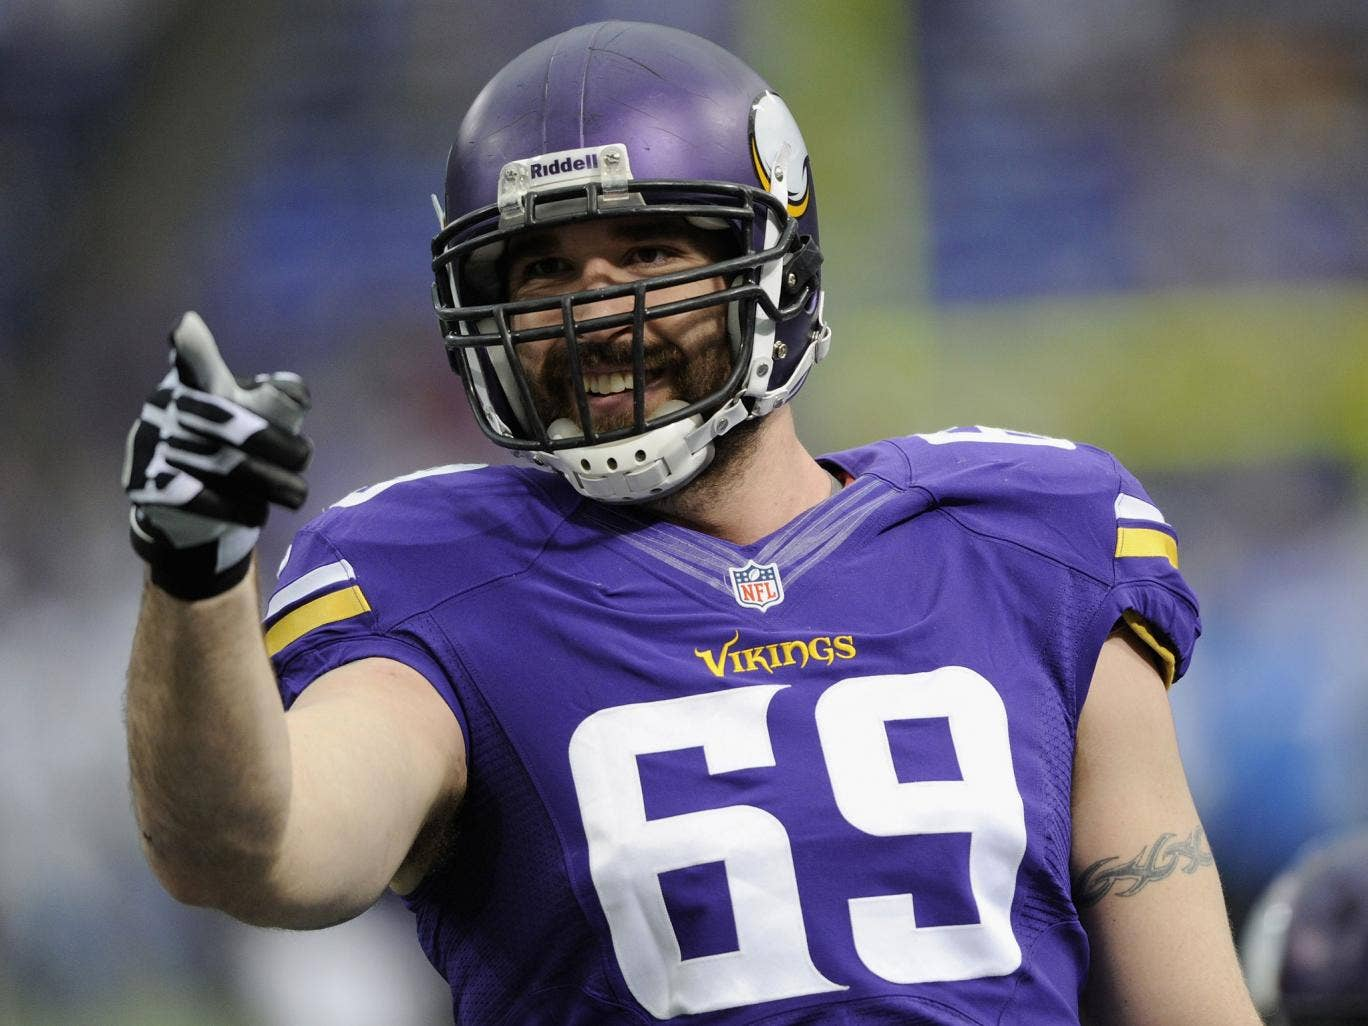 Jared Allen #69 of the Minnesota Vikings looks on before the game against the Detroit Lions on December 29, 2013